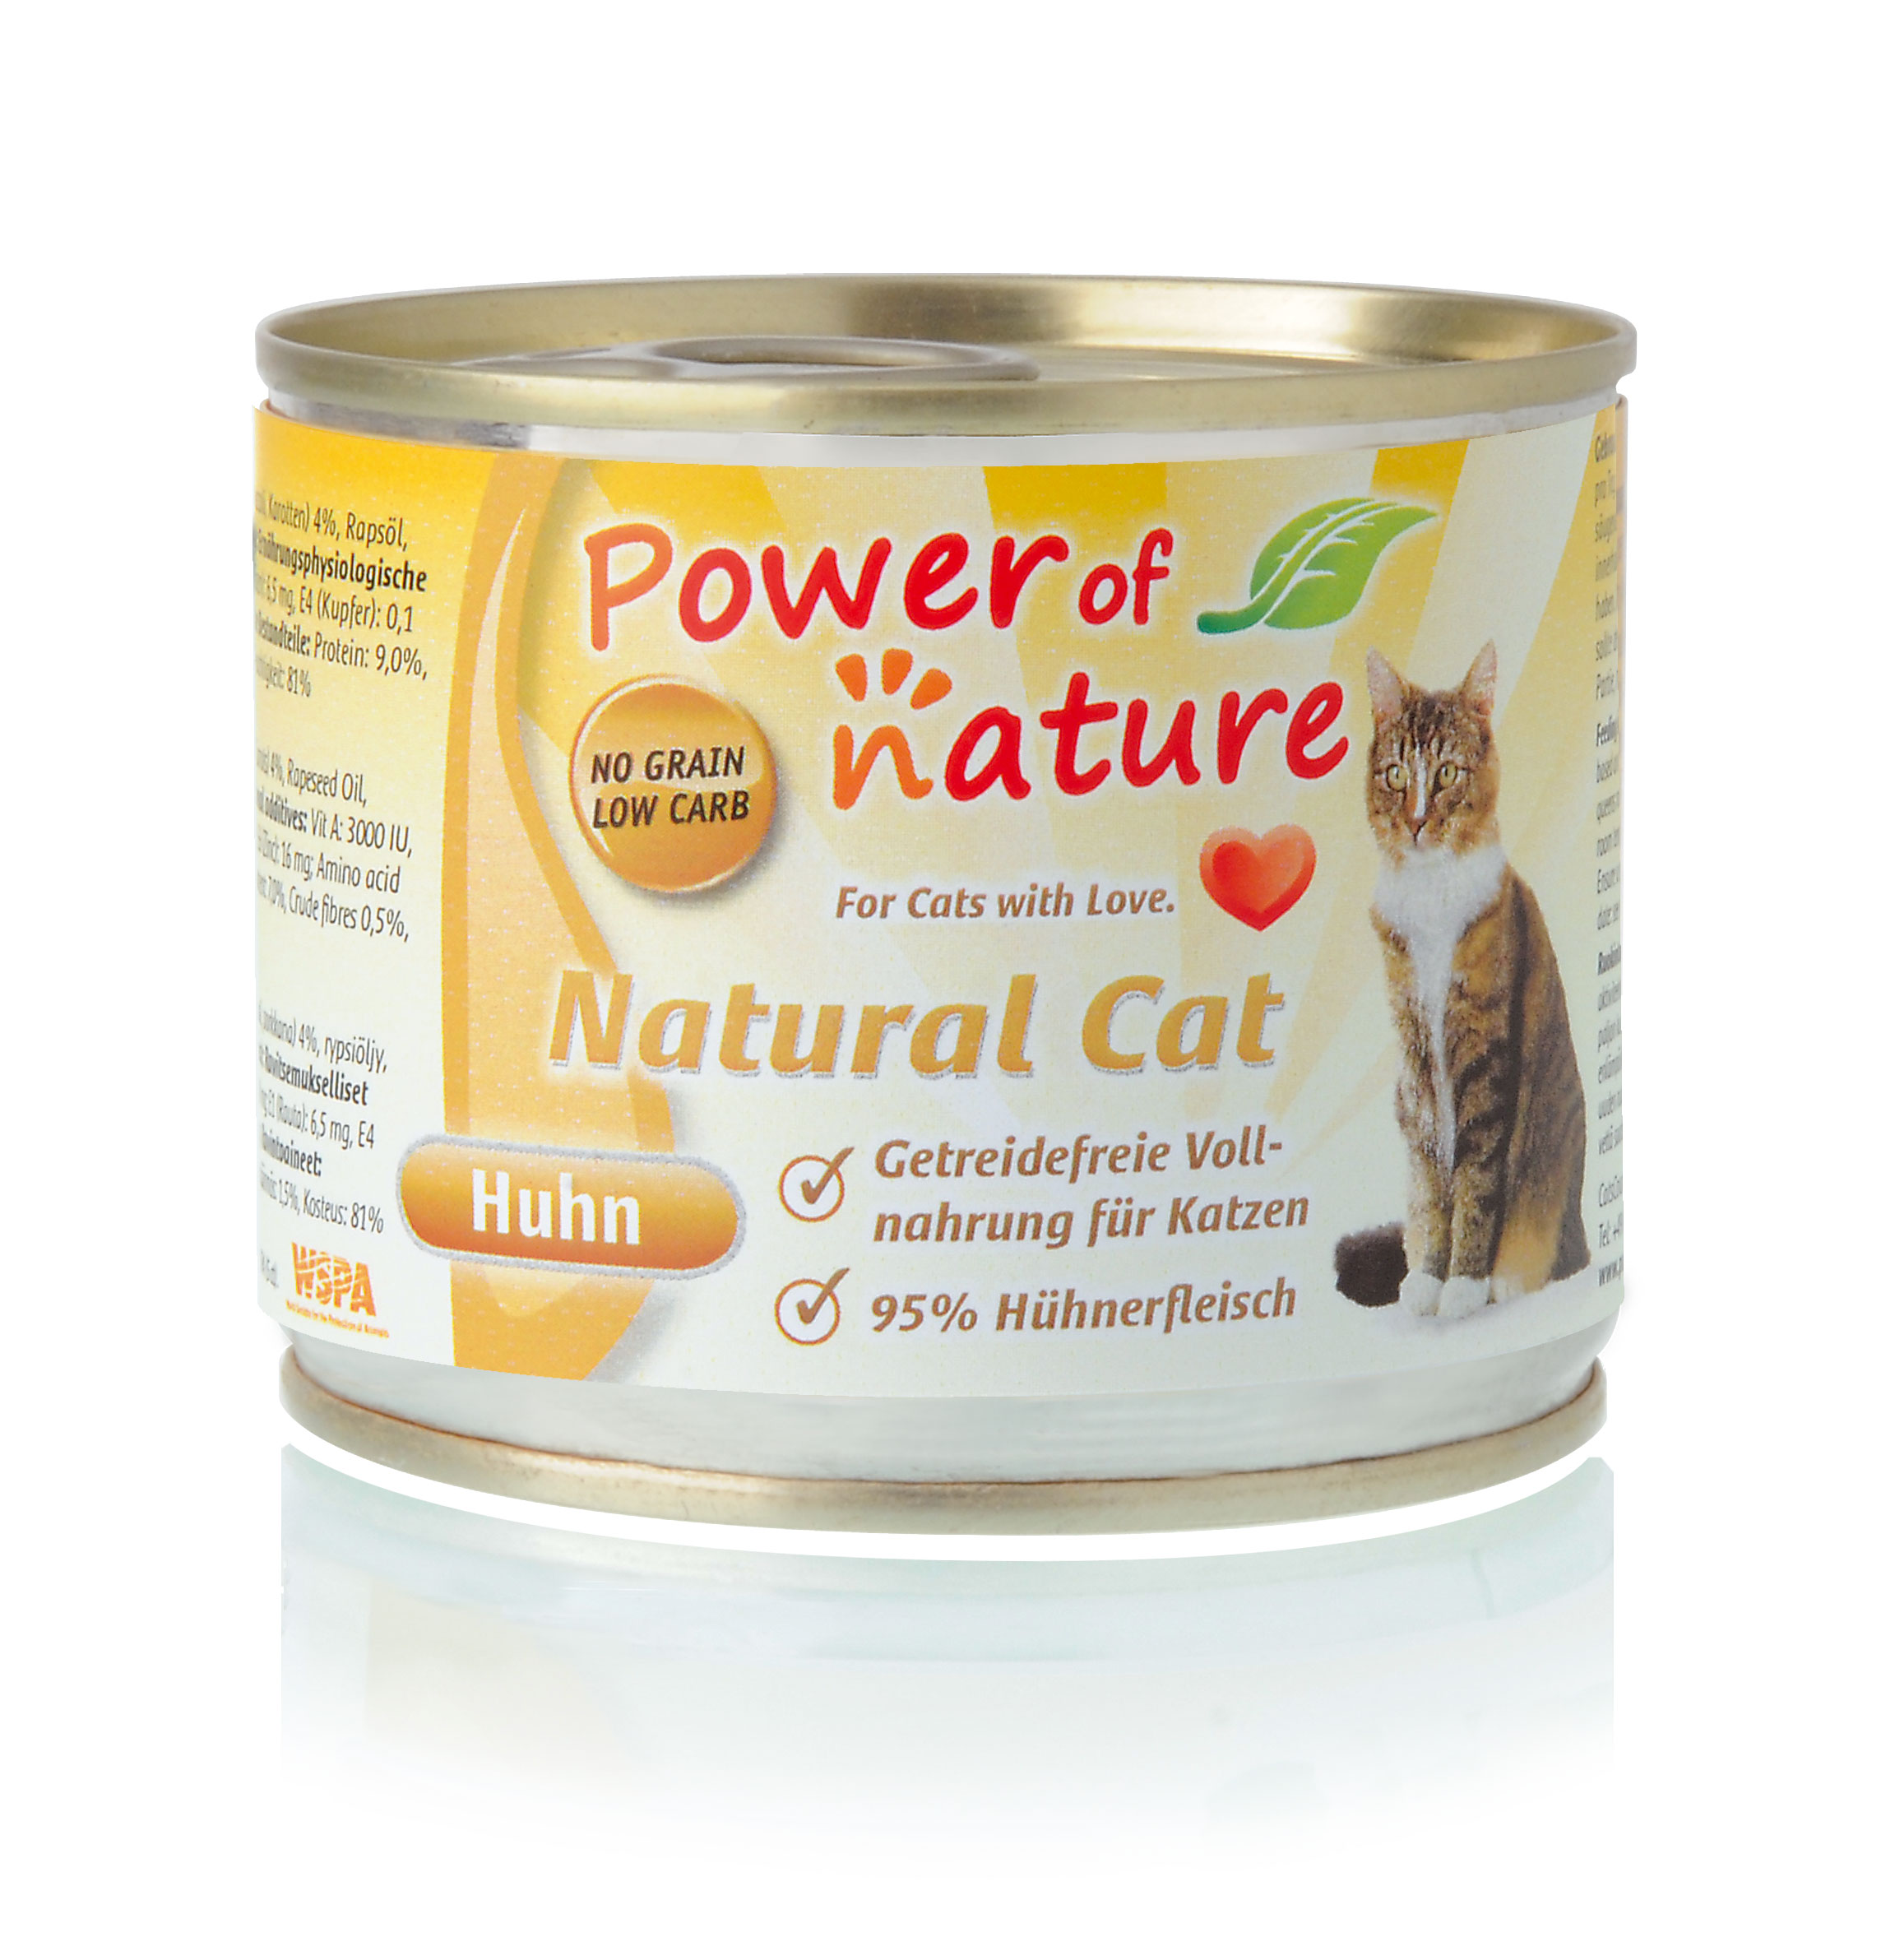 Power of Nature Natural Cat Dose Huhn 24 x 200g